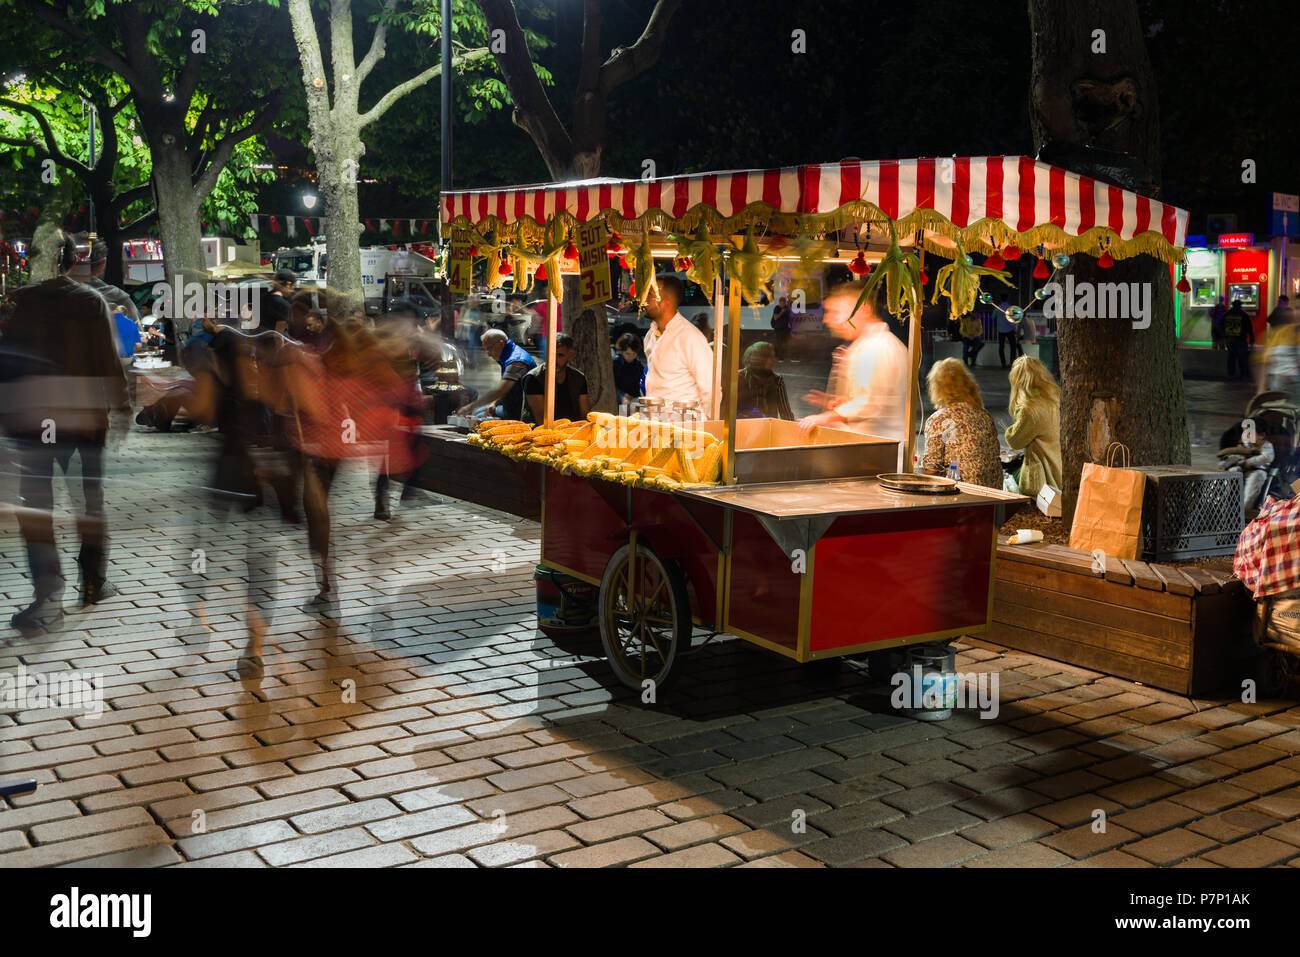 A small food stall selling corn on the cob or milk corn (Süt Mısır) with people walking past at night, Istanbul, Turkey - Stock Image